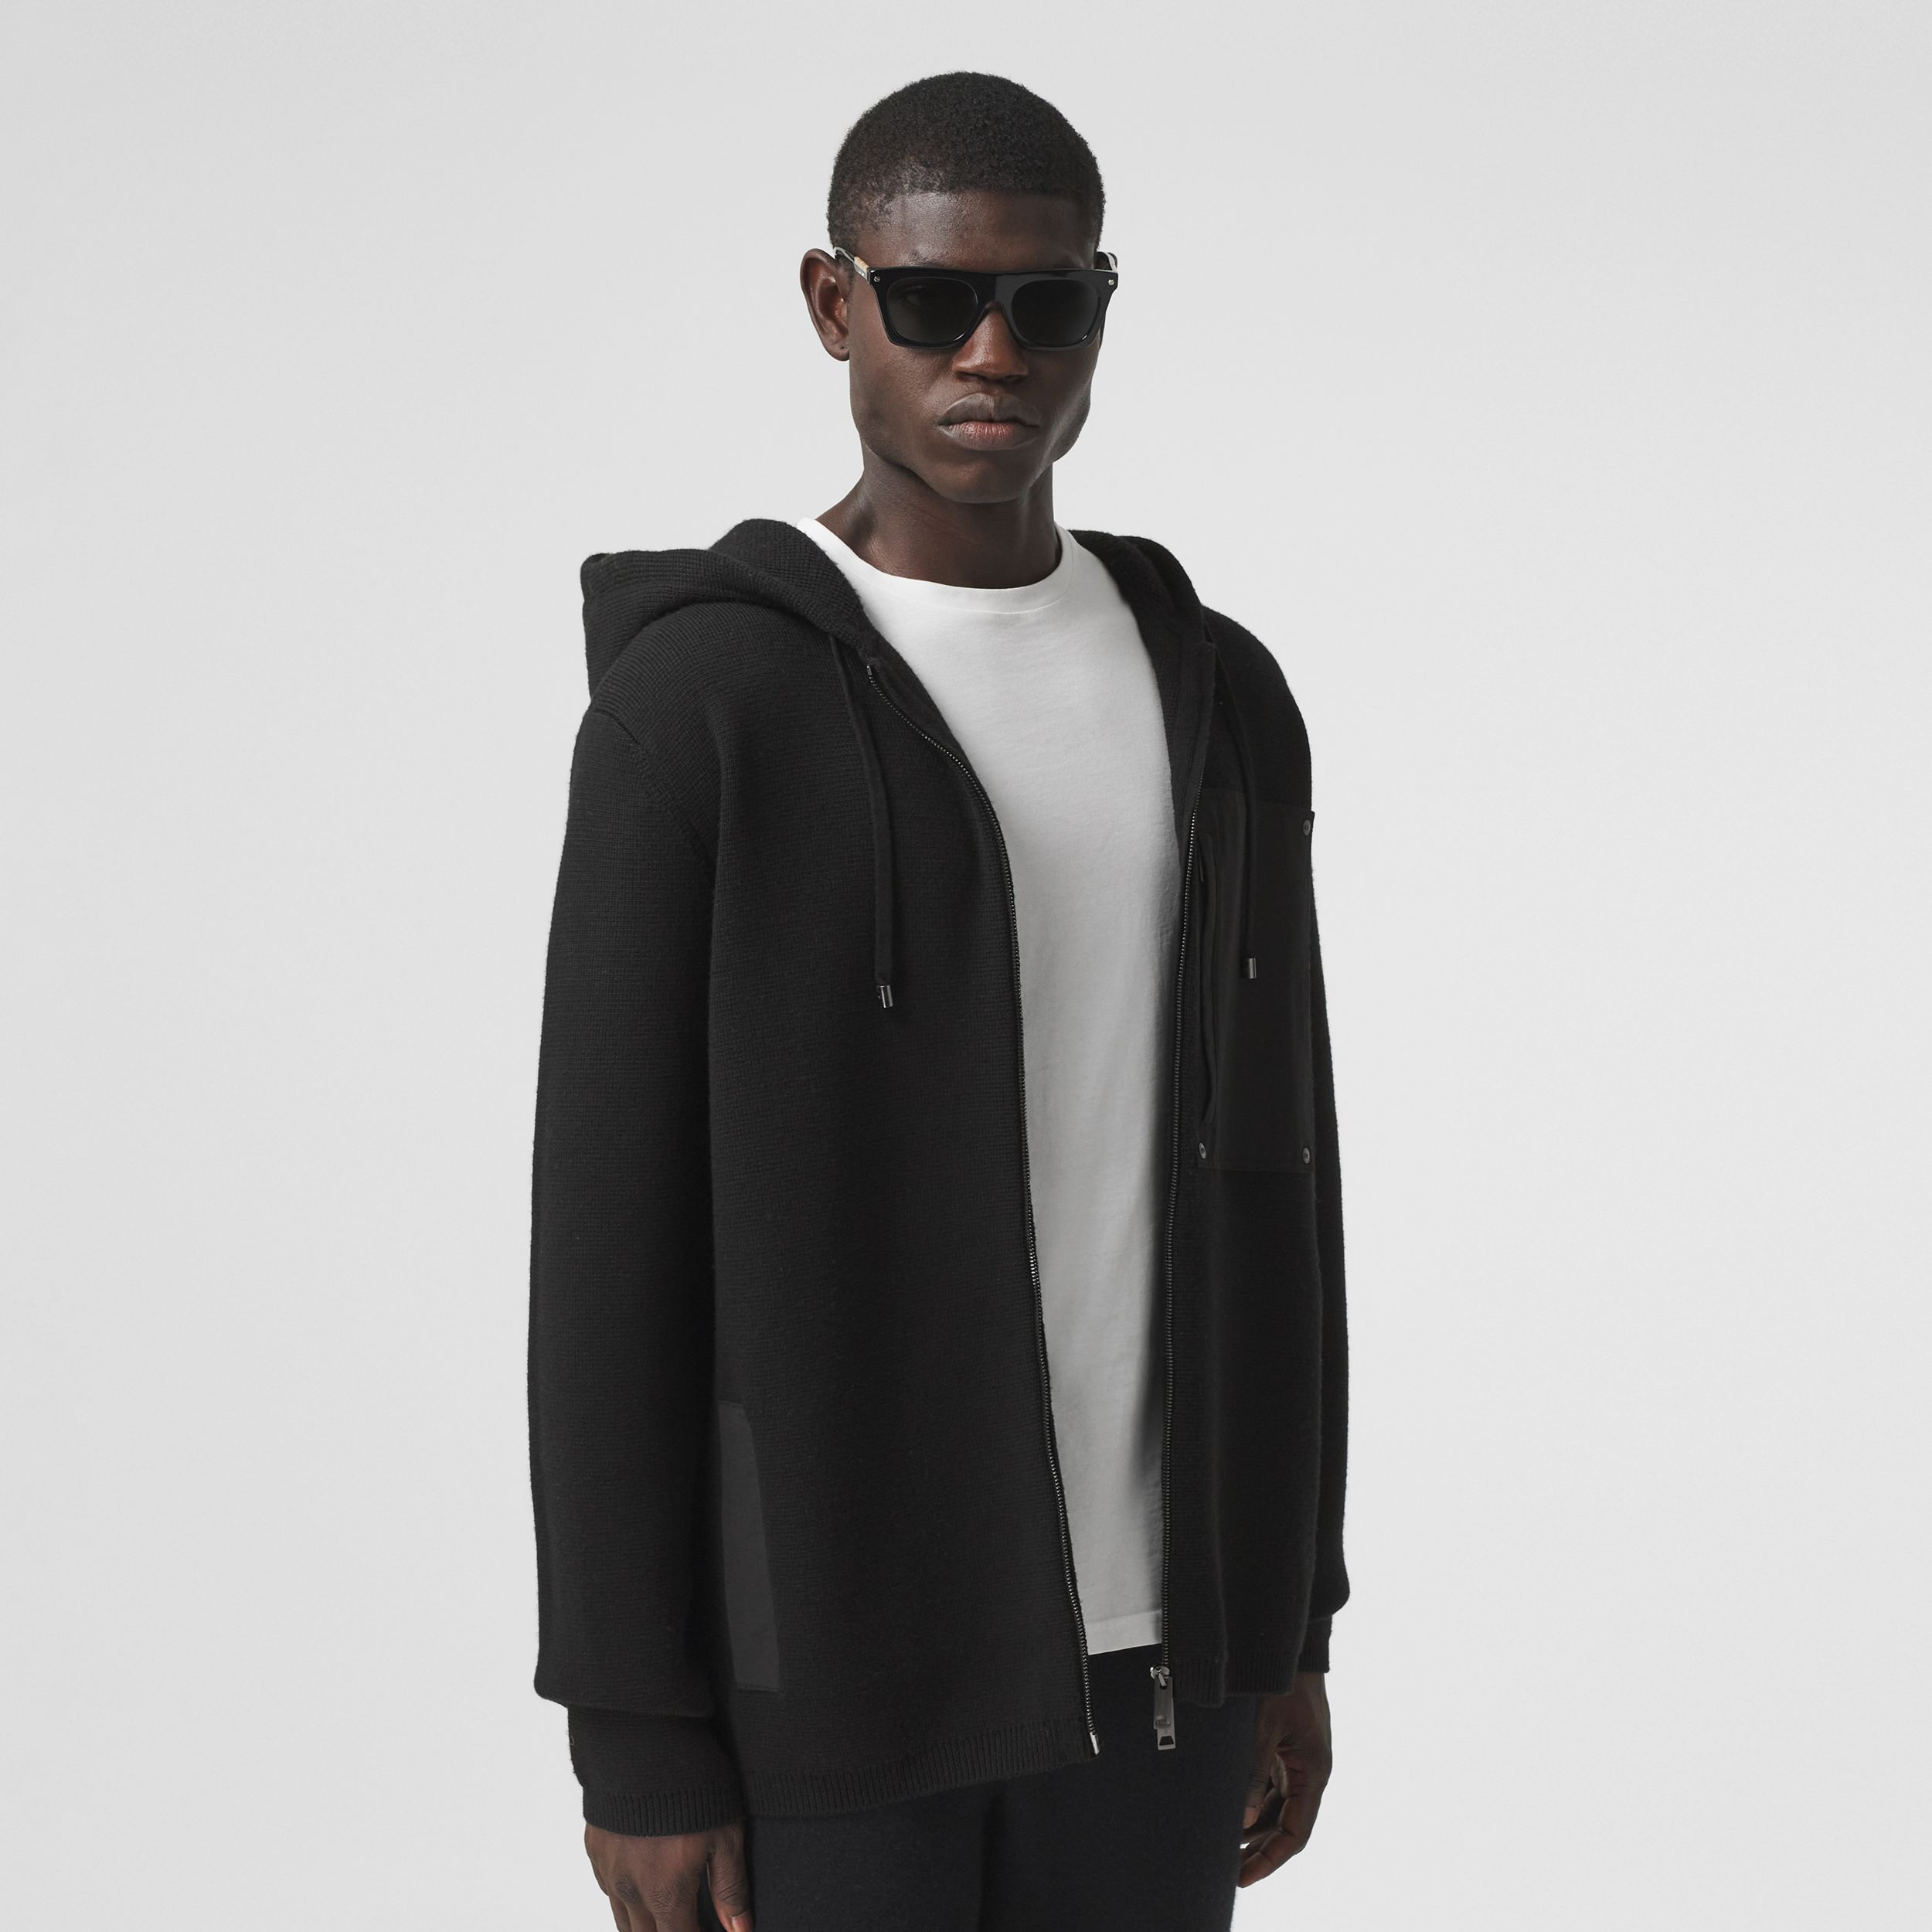 Contrast Pocket Wool Hooded Top in Black - Men | Burberry - 1